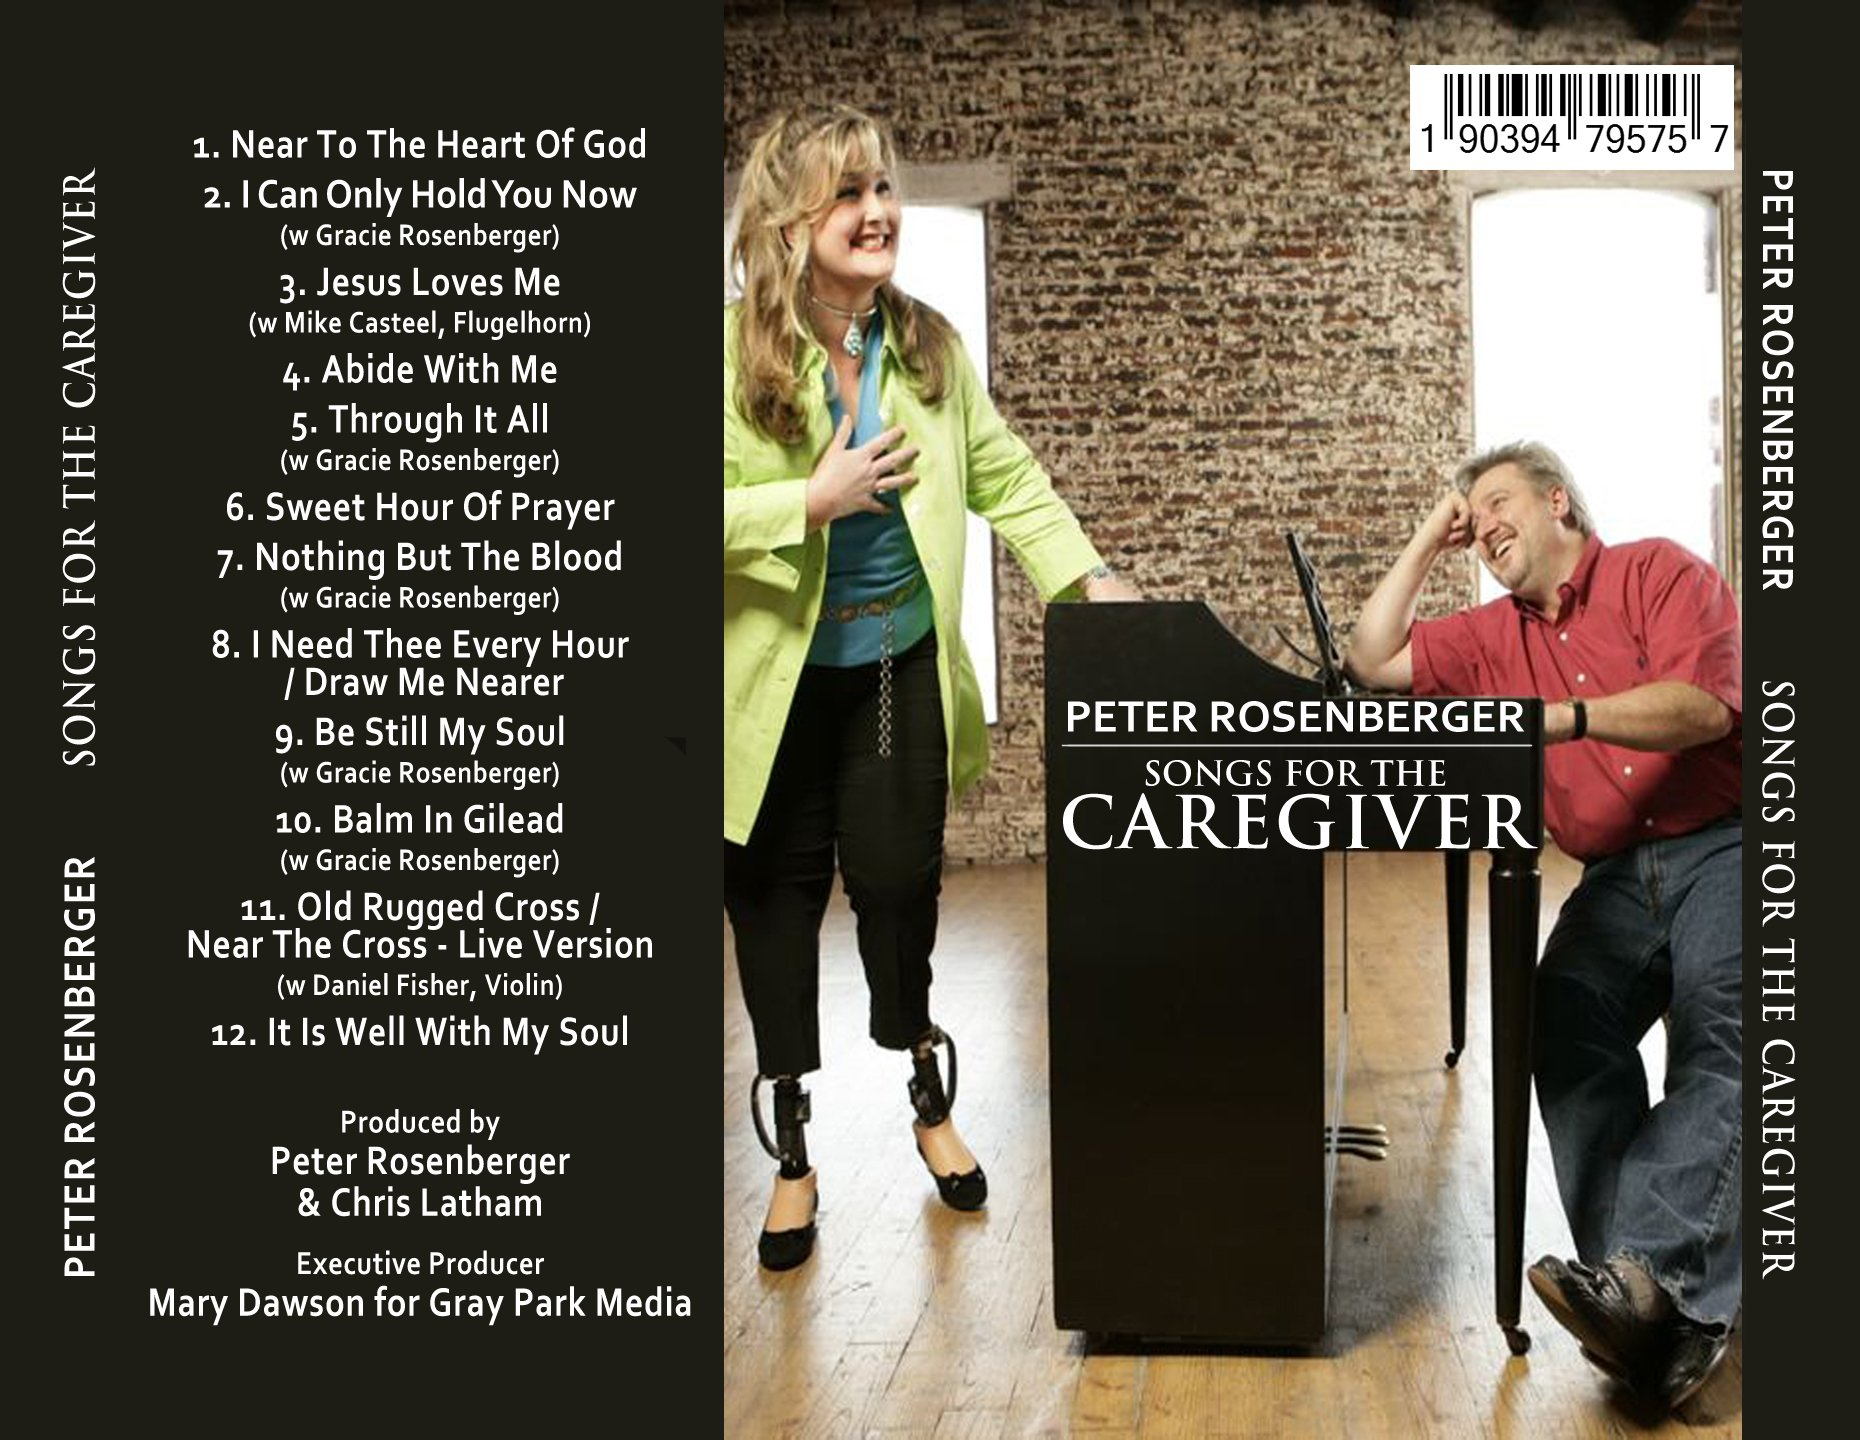 List of Songs for Caregivers Produced by Peter Rosenberger